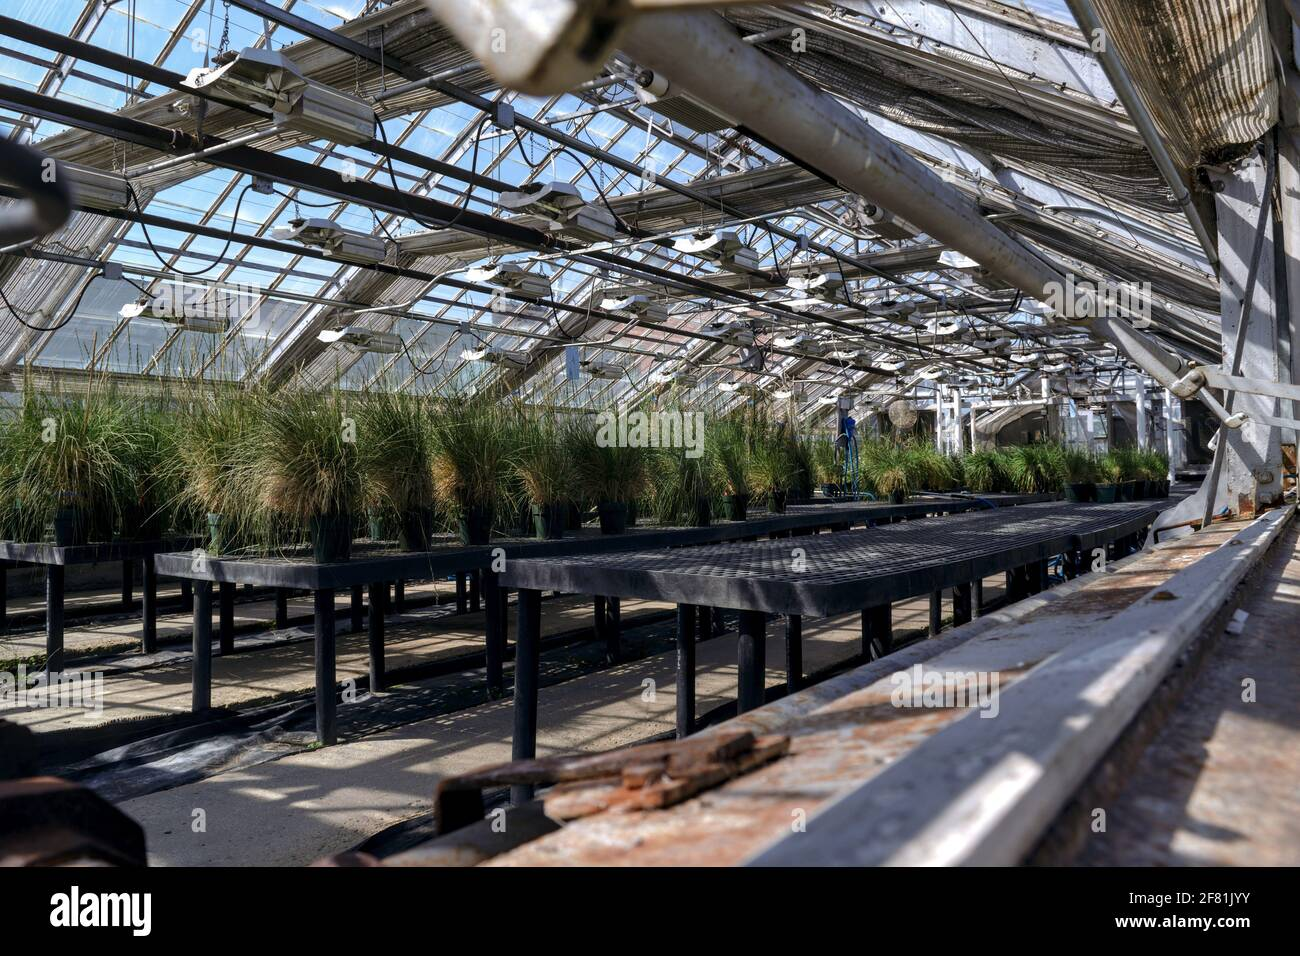 Interior of the greenhouses at the Central Experimental Farm, growing some kind of grasses. Ottawa, Ontario, Canada. Stock Photo